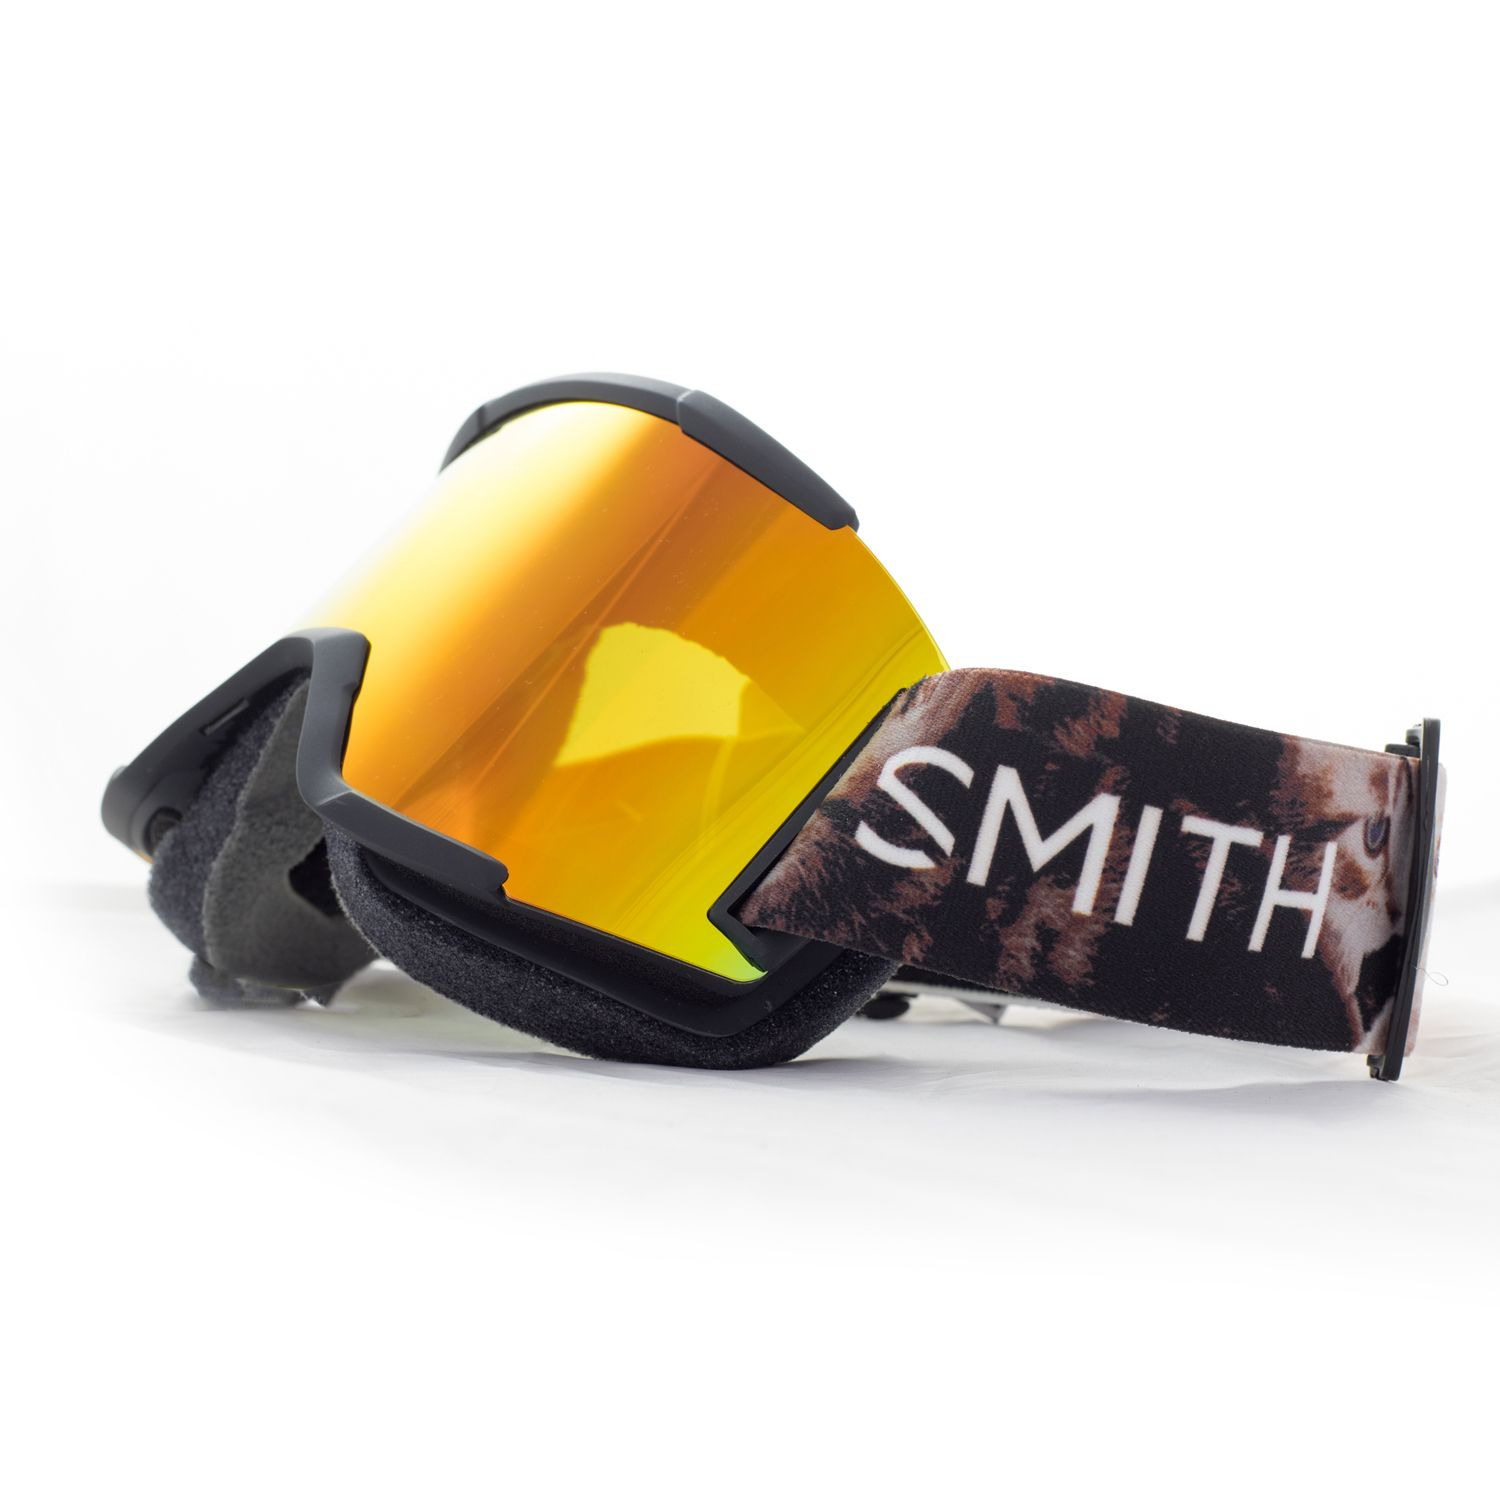 31b75ad9de2c Smith Squad Snow Goggles in Cattastic Design with Red SolX Mirror Lens